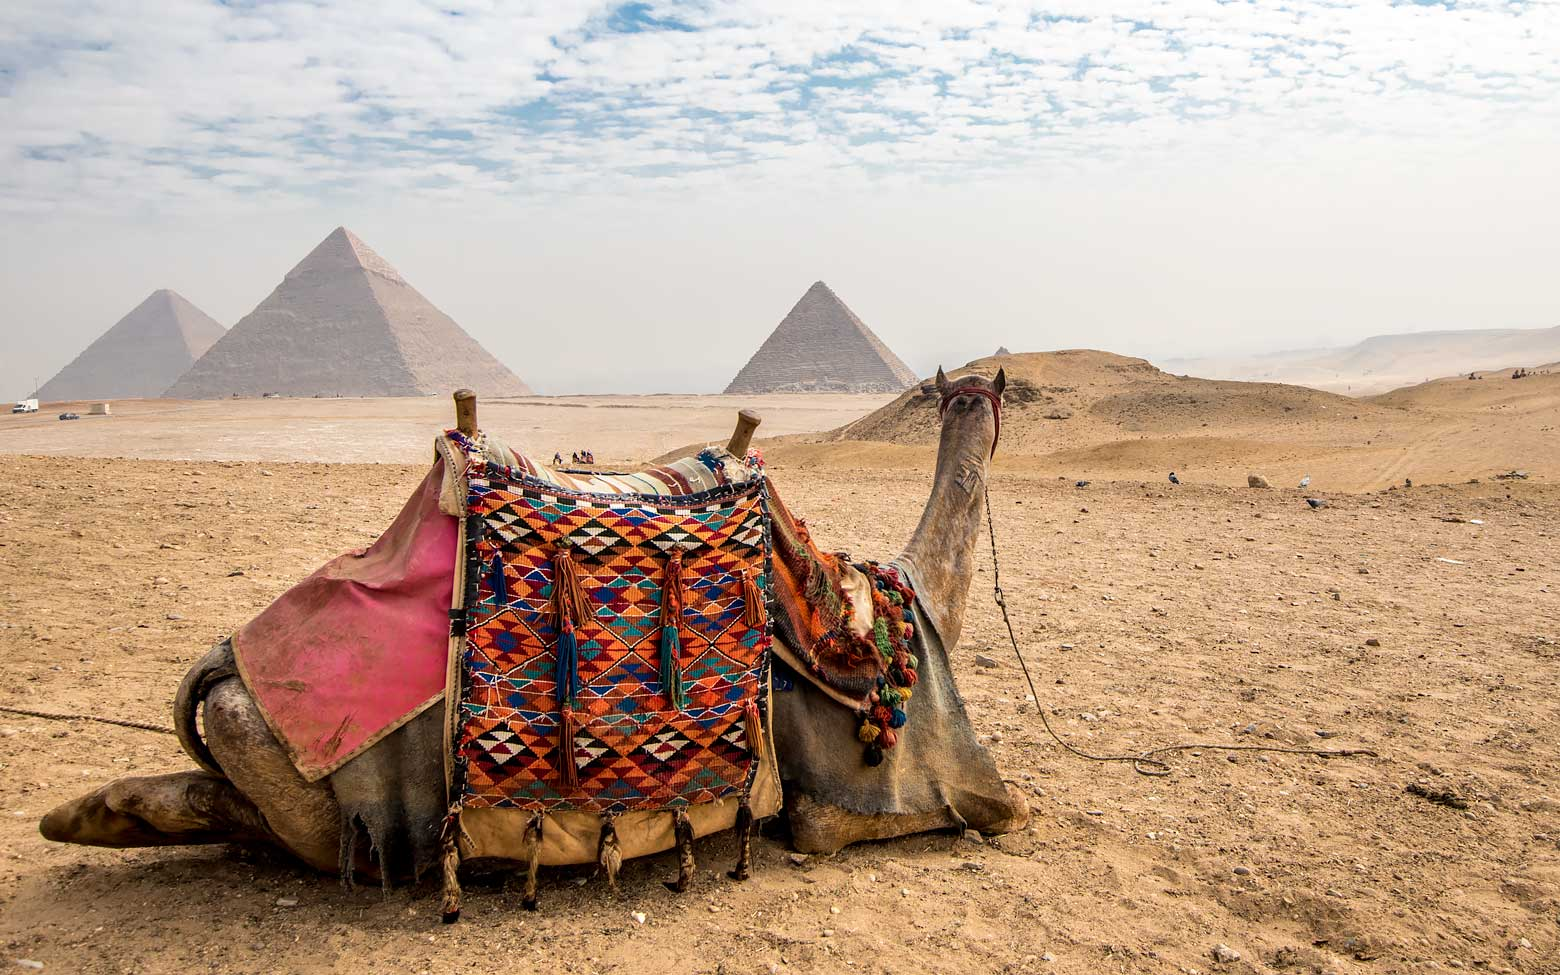 What to See in Cairo? The Good, the Bad and the Ugly